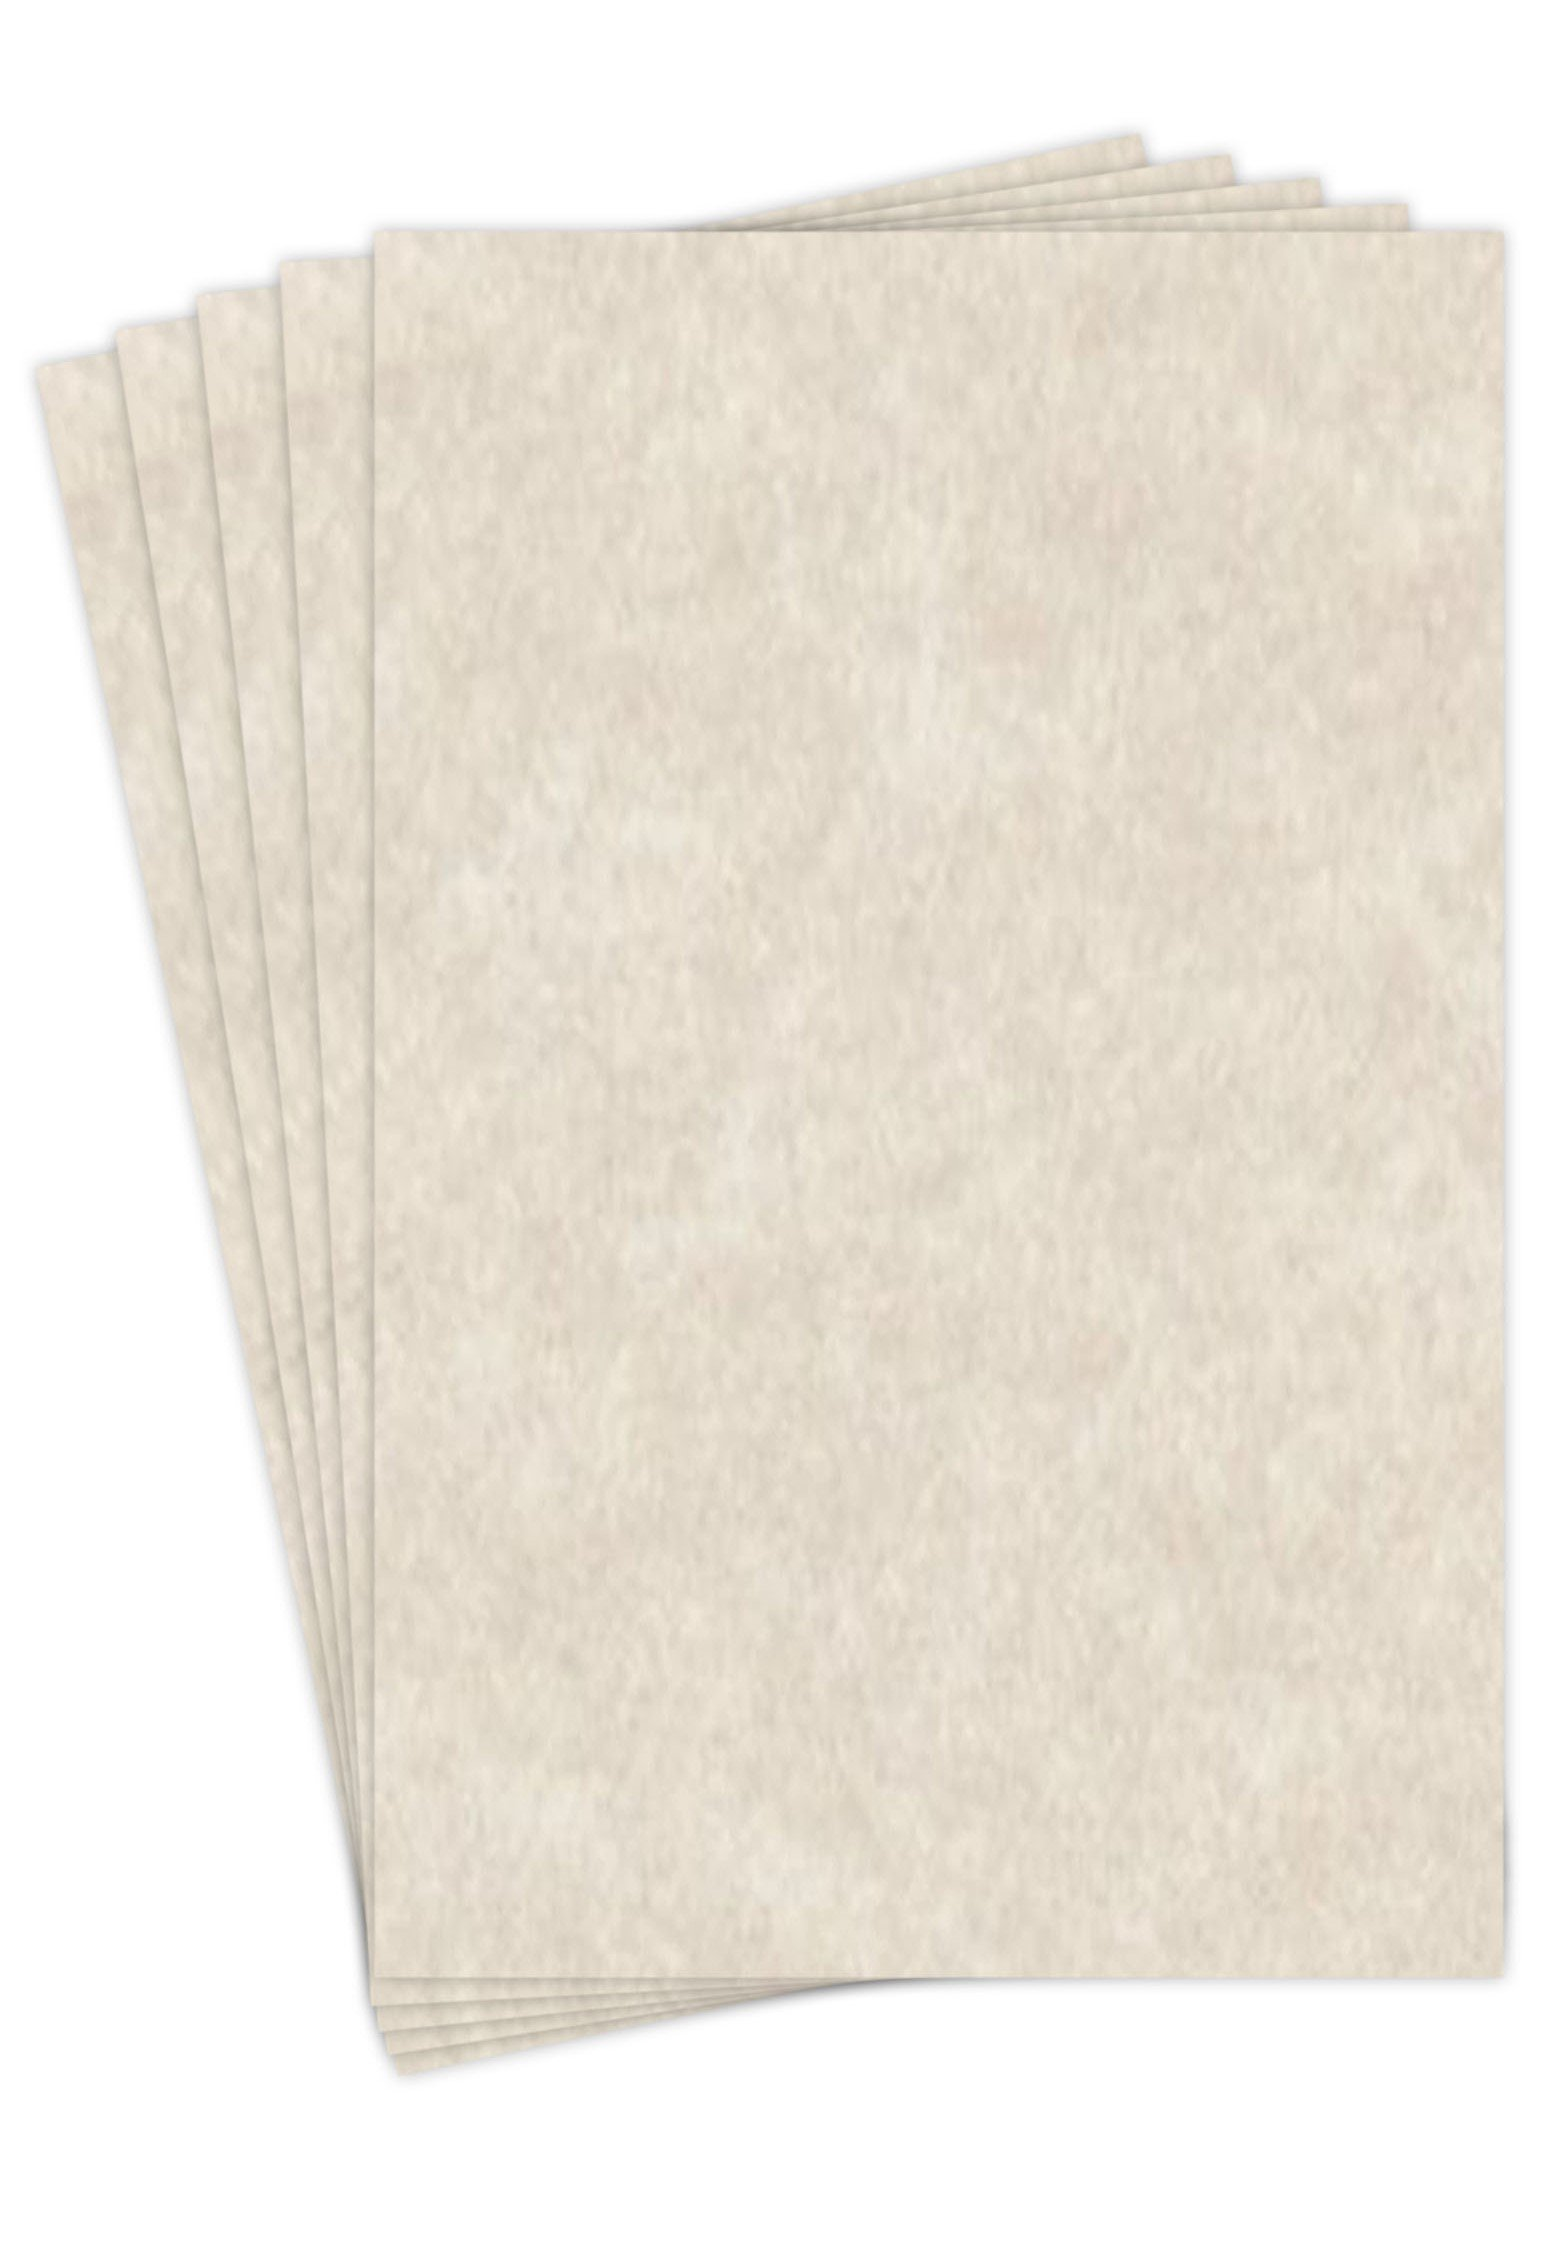 11 X 17 Stationery Parchment Recycled Paper 65lb. Cover Cardstock - 50 Sheets Per Pack (Natural Cream)